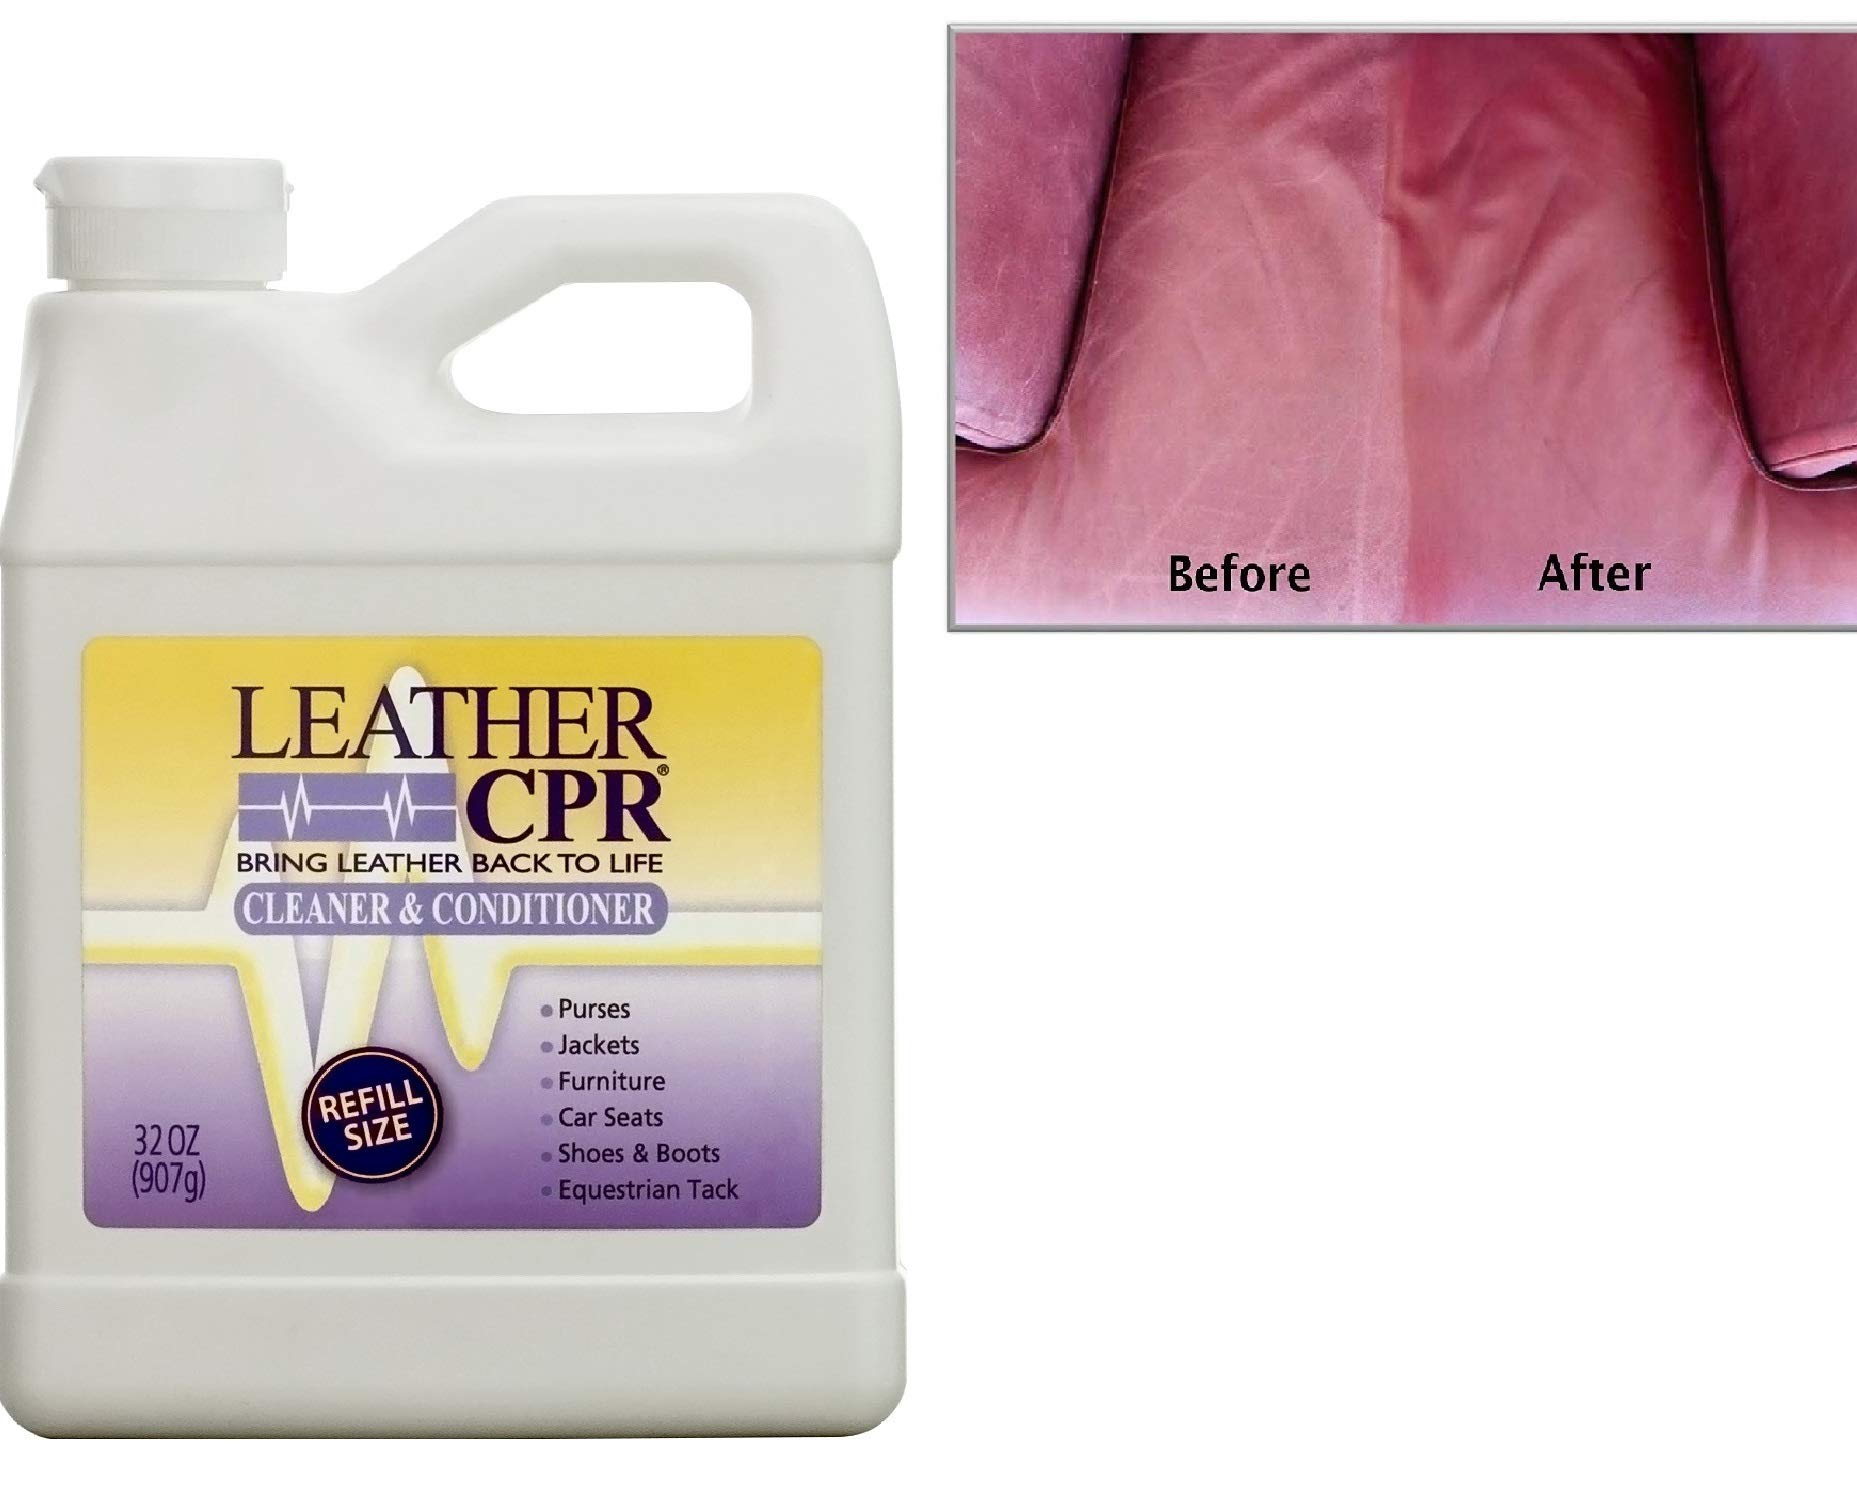 CPR Leather Cleaner & Conditioner (32 Ounce Bottle) Restores and Protects Leather Furniture, Purses, Car Seats, Jackets and More